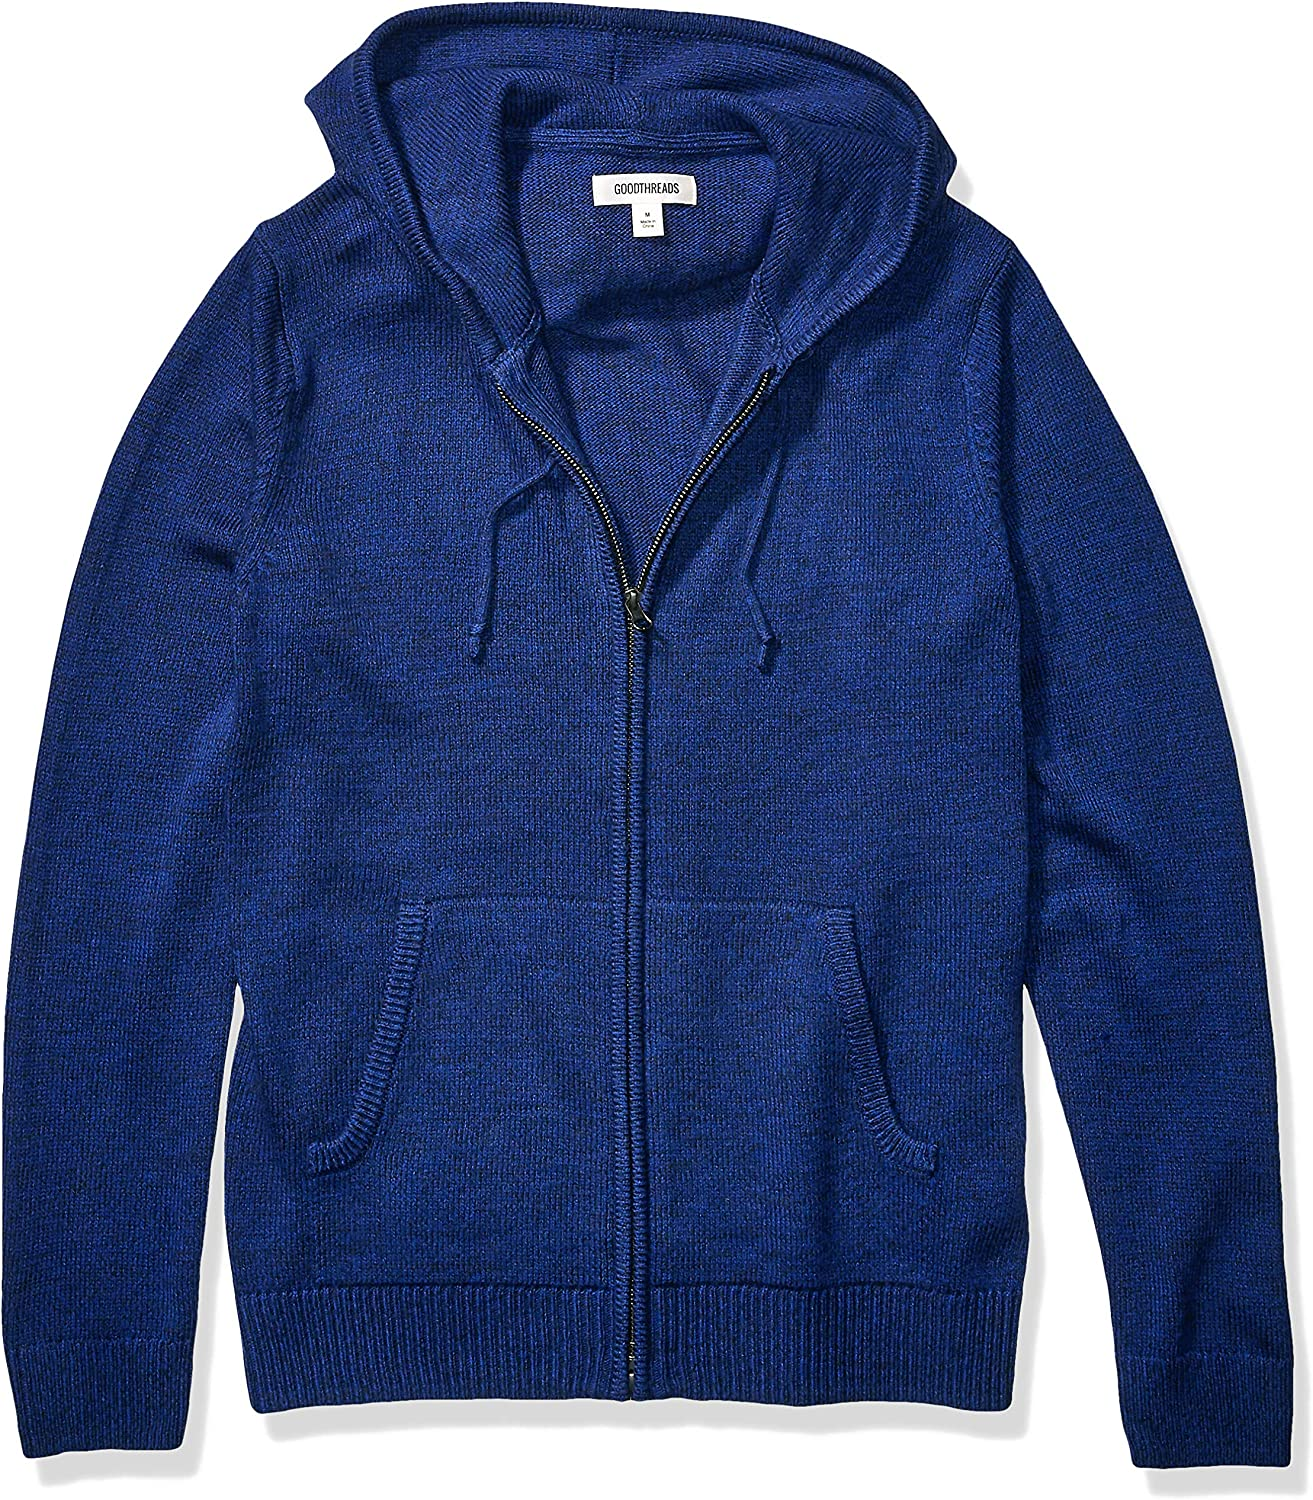 Goodthreads Supersoft Marled Fullzip Hoodie Sweater Hombre